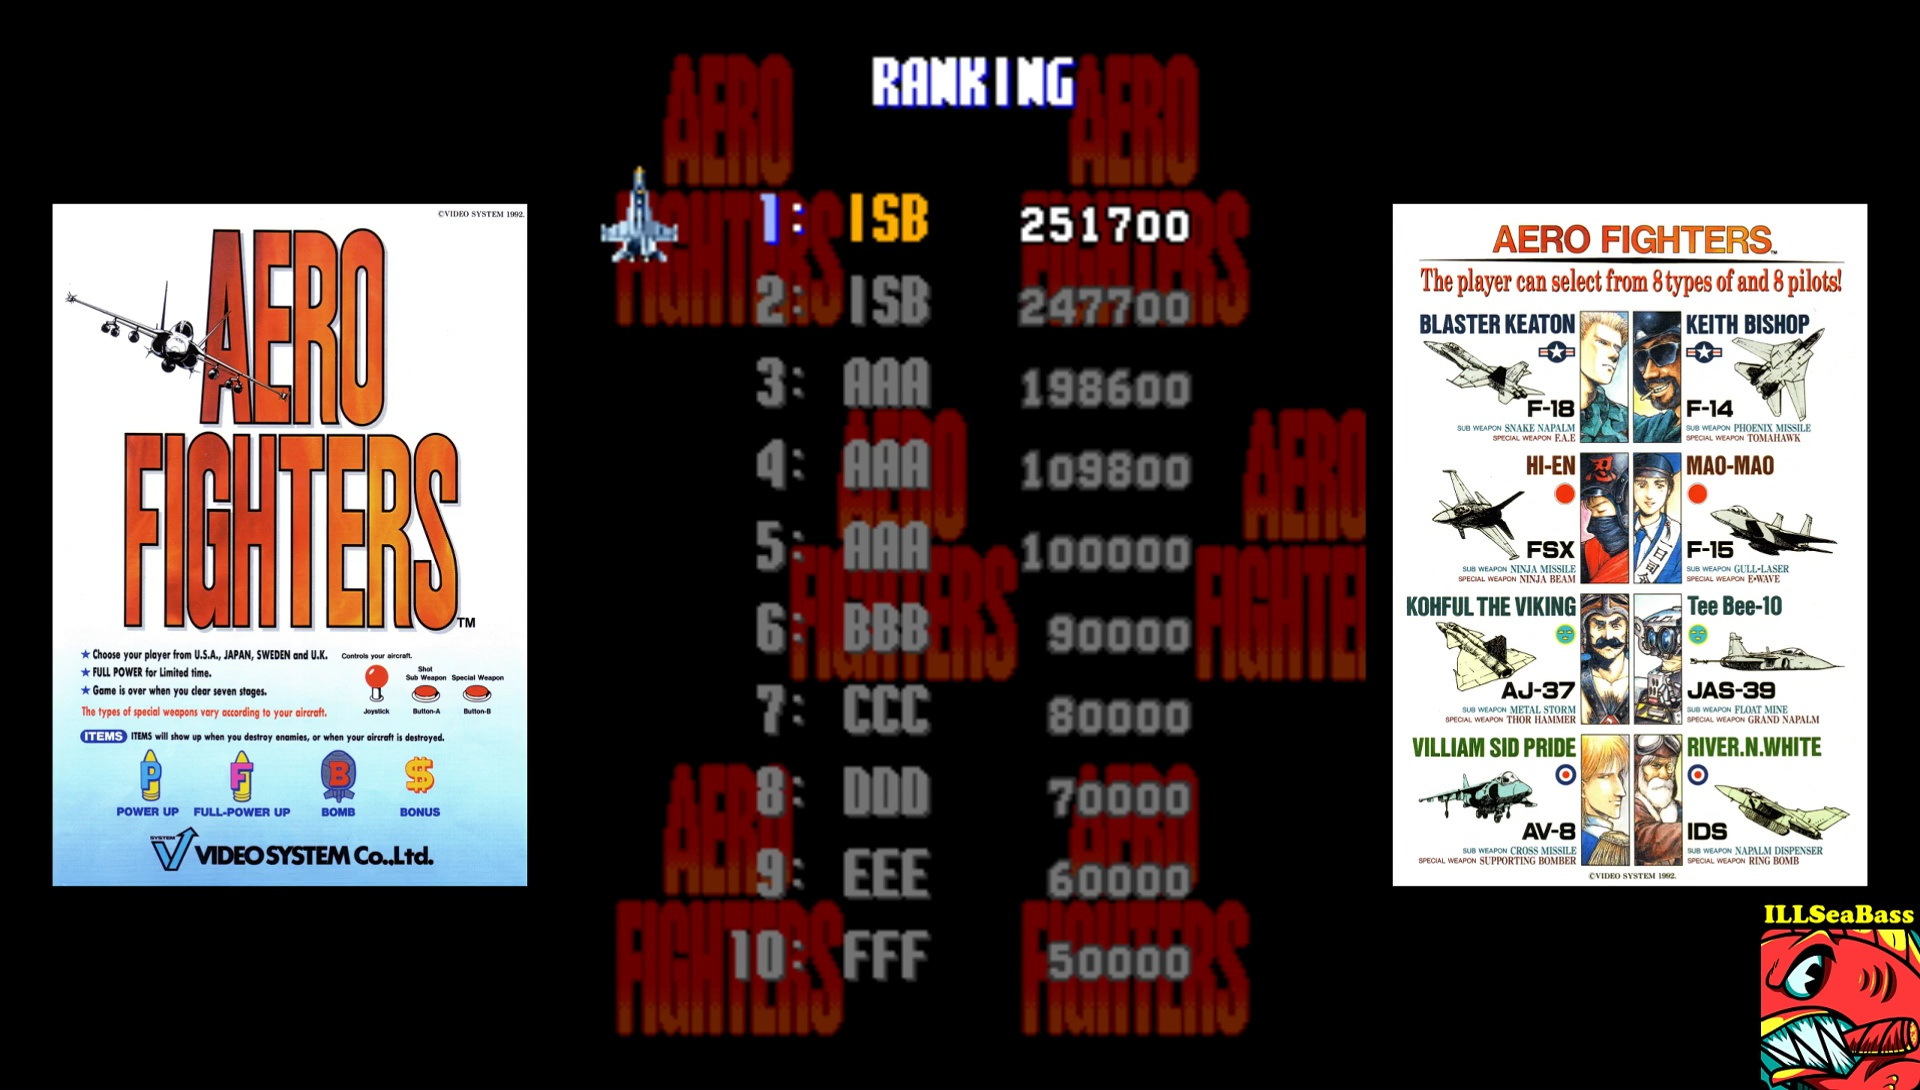 ILLSeaBass: Aero Fighters (Arcade Emulated / M.A.M.E.) 251,700 points on 2017-07-04 22:44:24